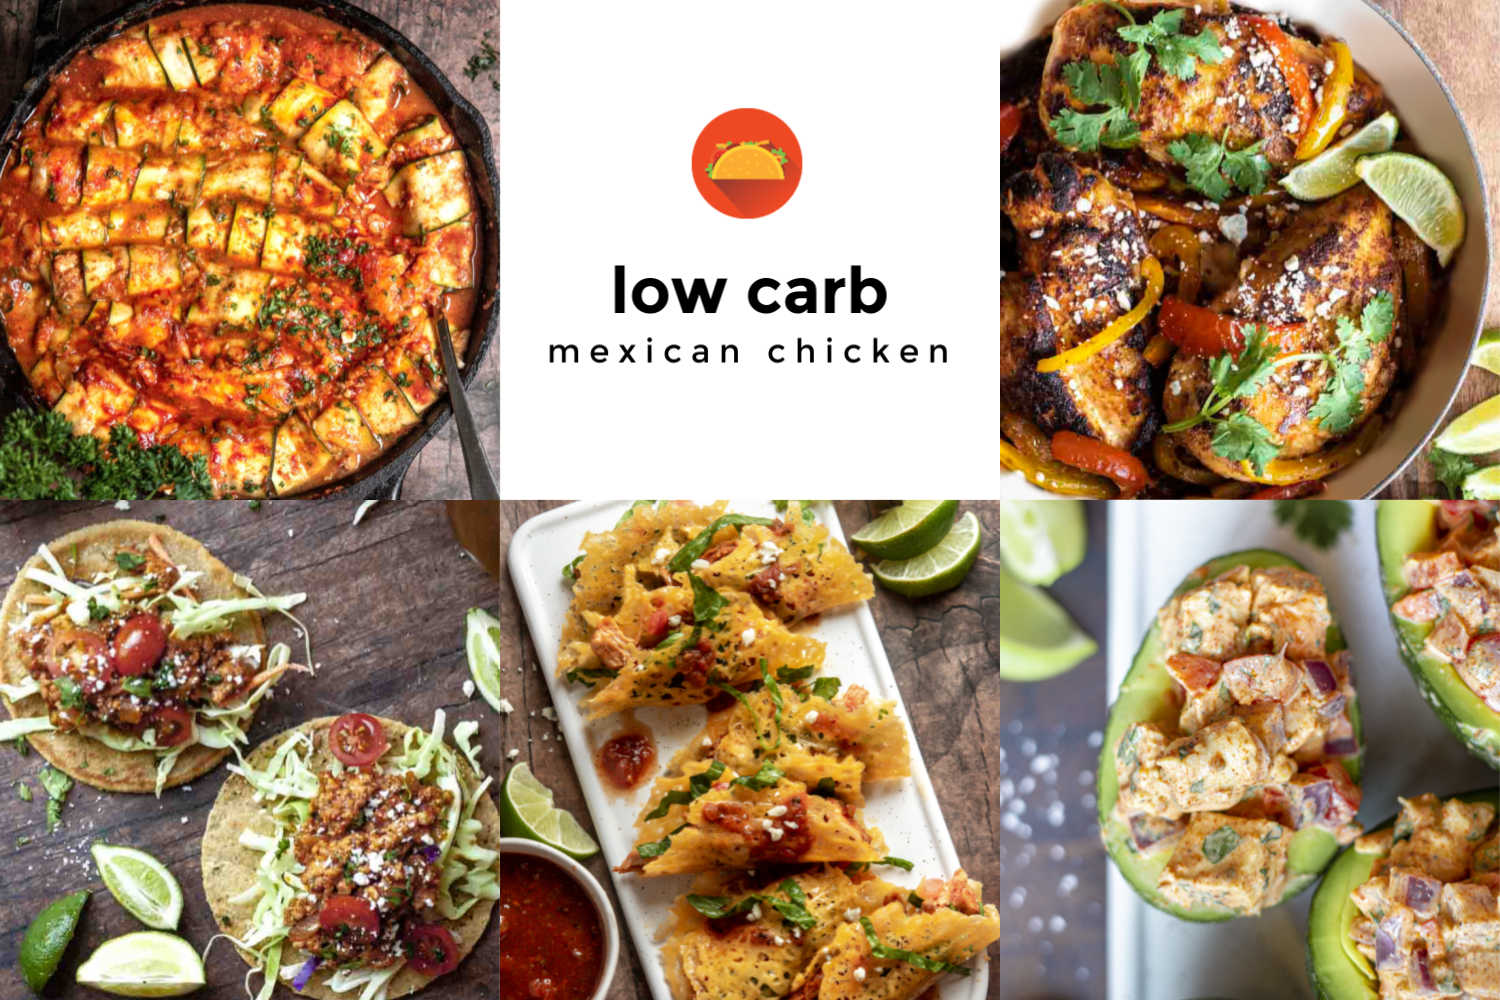 Low carb mexican chicken